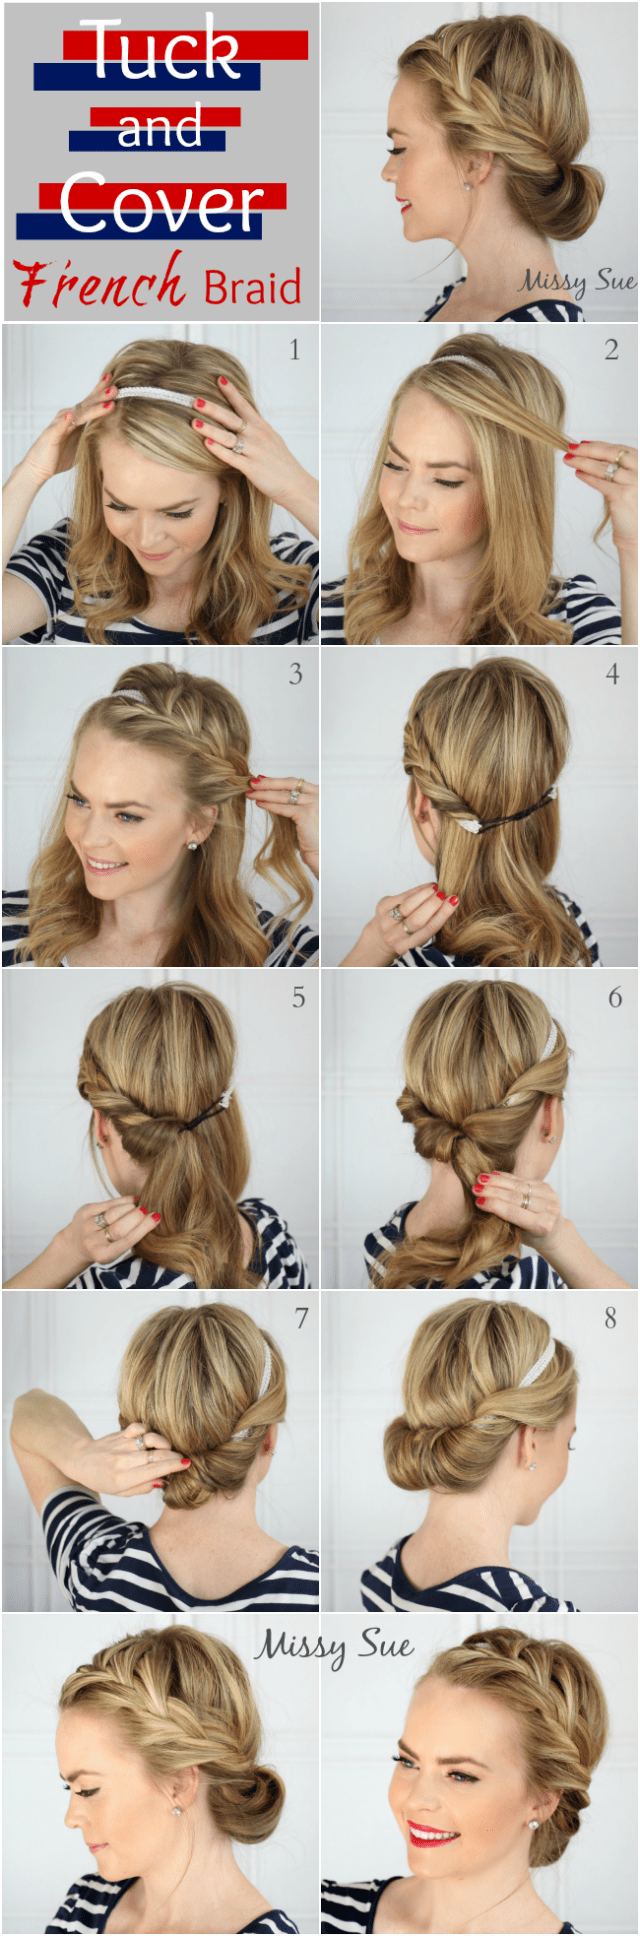 10 best diy wedding hairstyles with tutorials | tulle